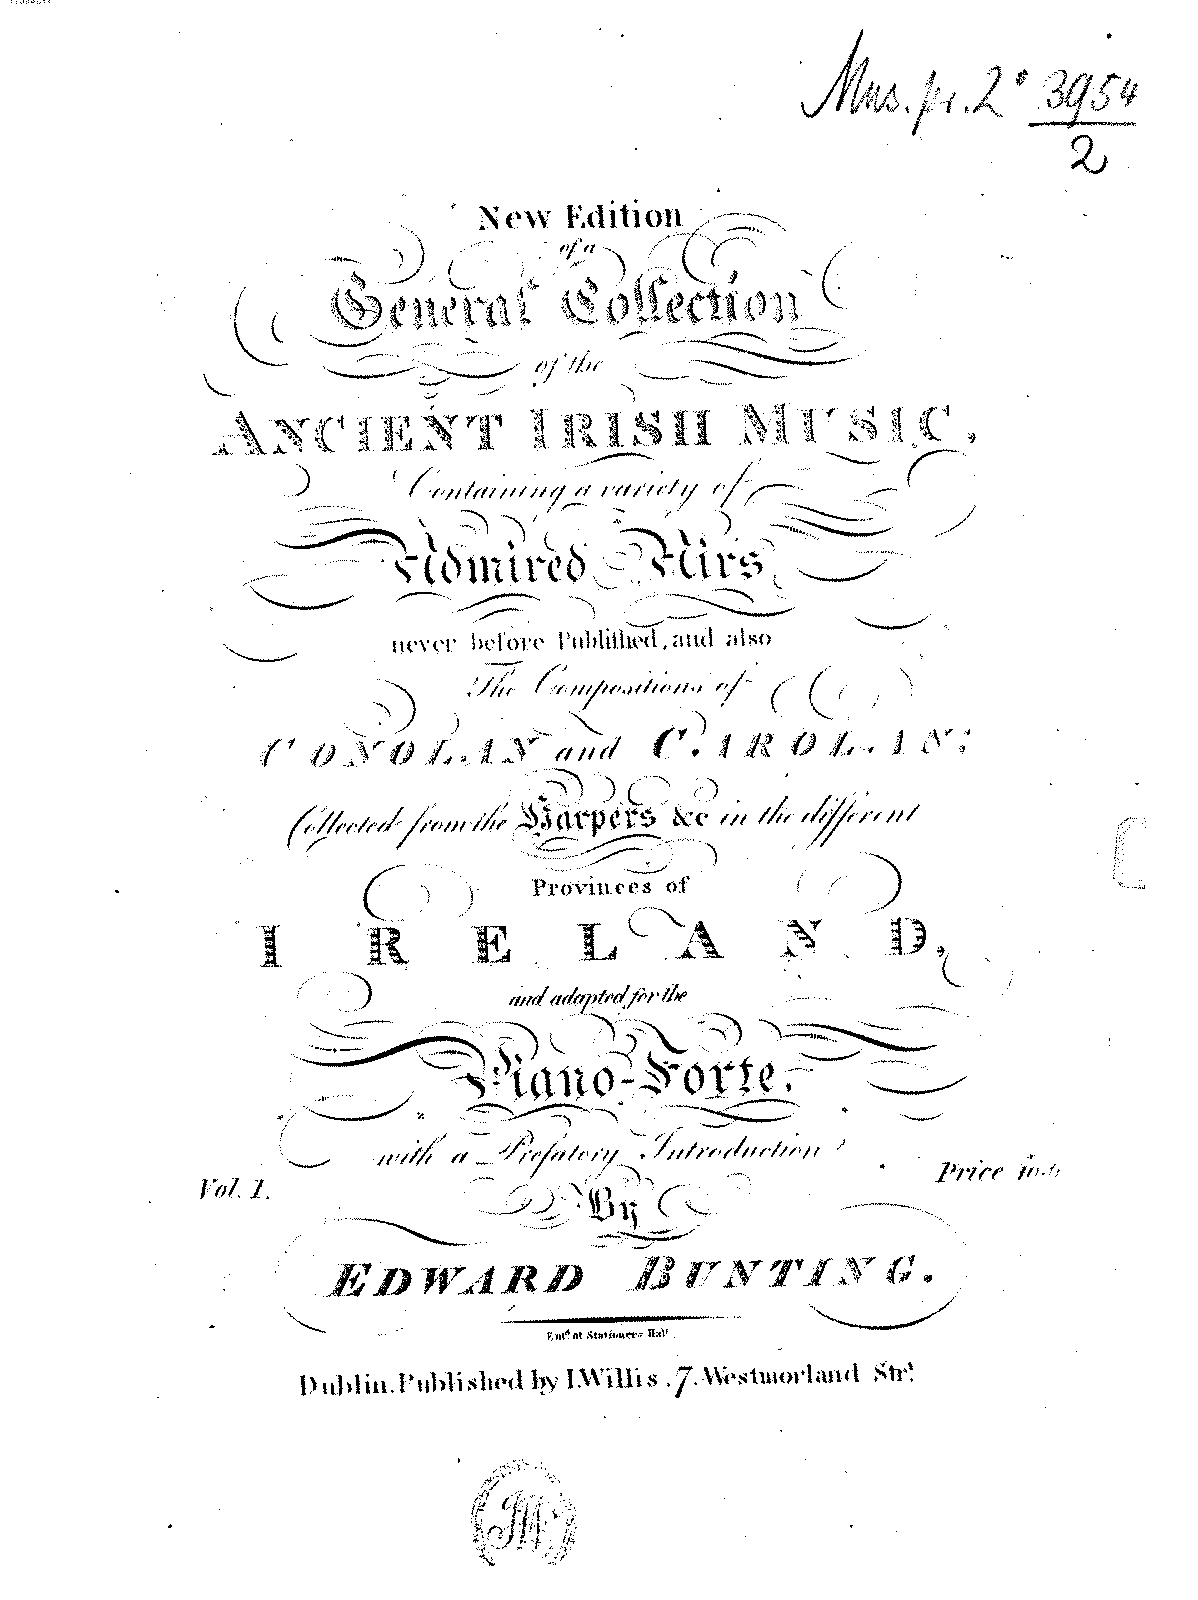 PMLP74803-bunting ancient irish music vol1 new ed 1820.pdf